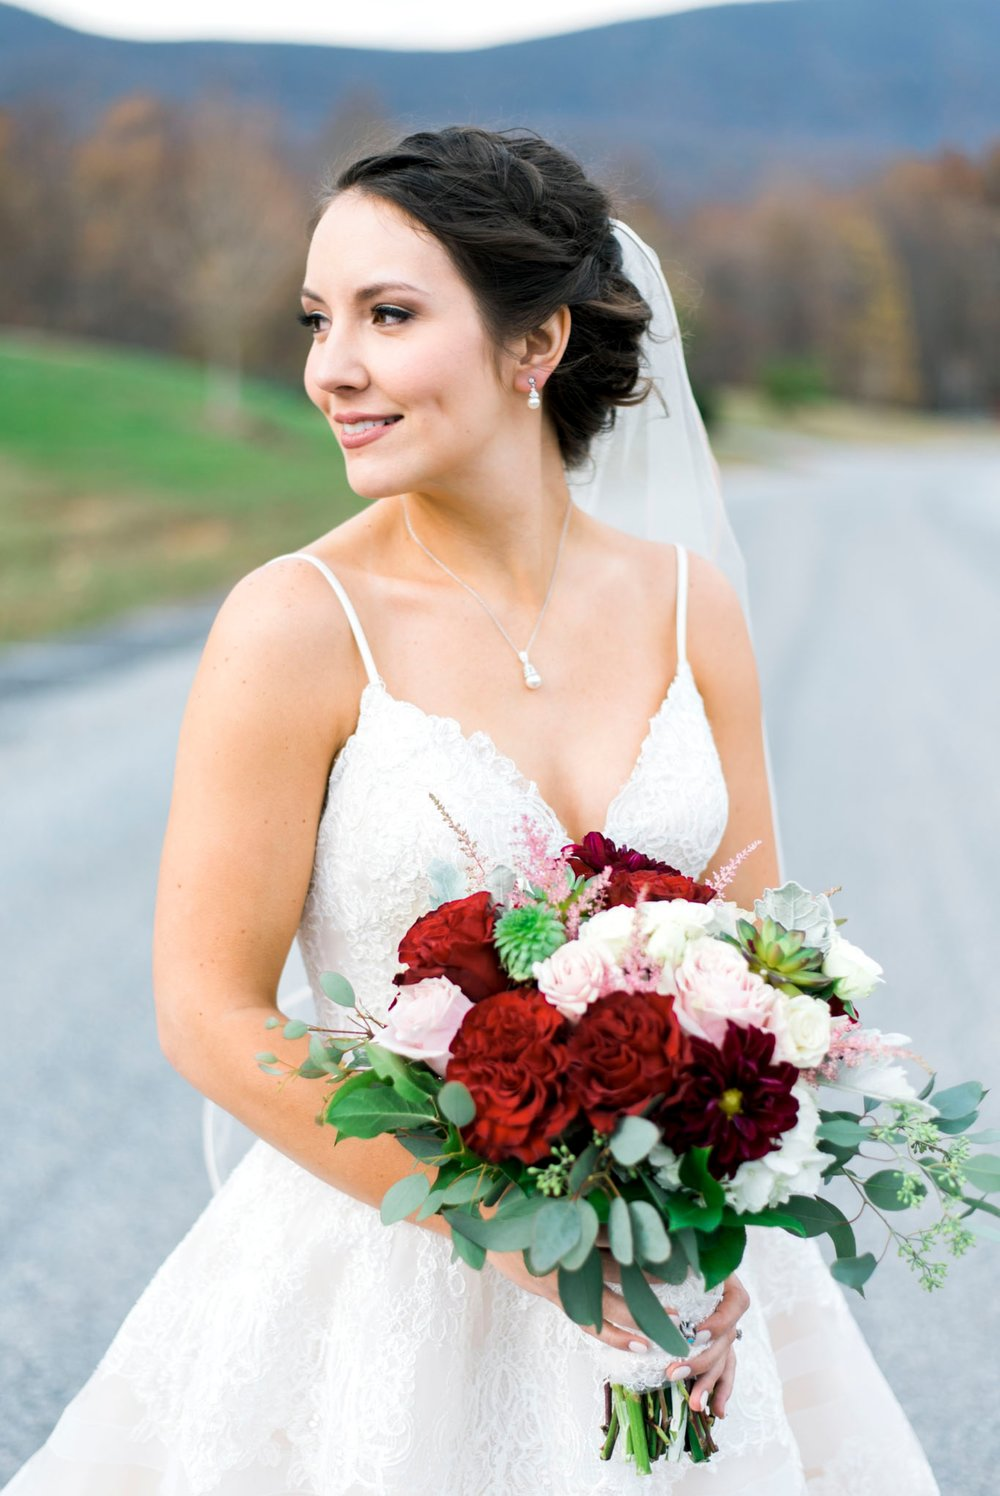 IrvineEstate_LexingtonVA_Wedding_FallWedding_VirginiaWeddingPhotographer 45.jpg